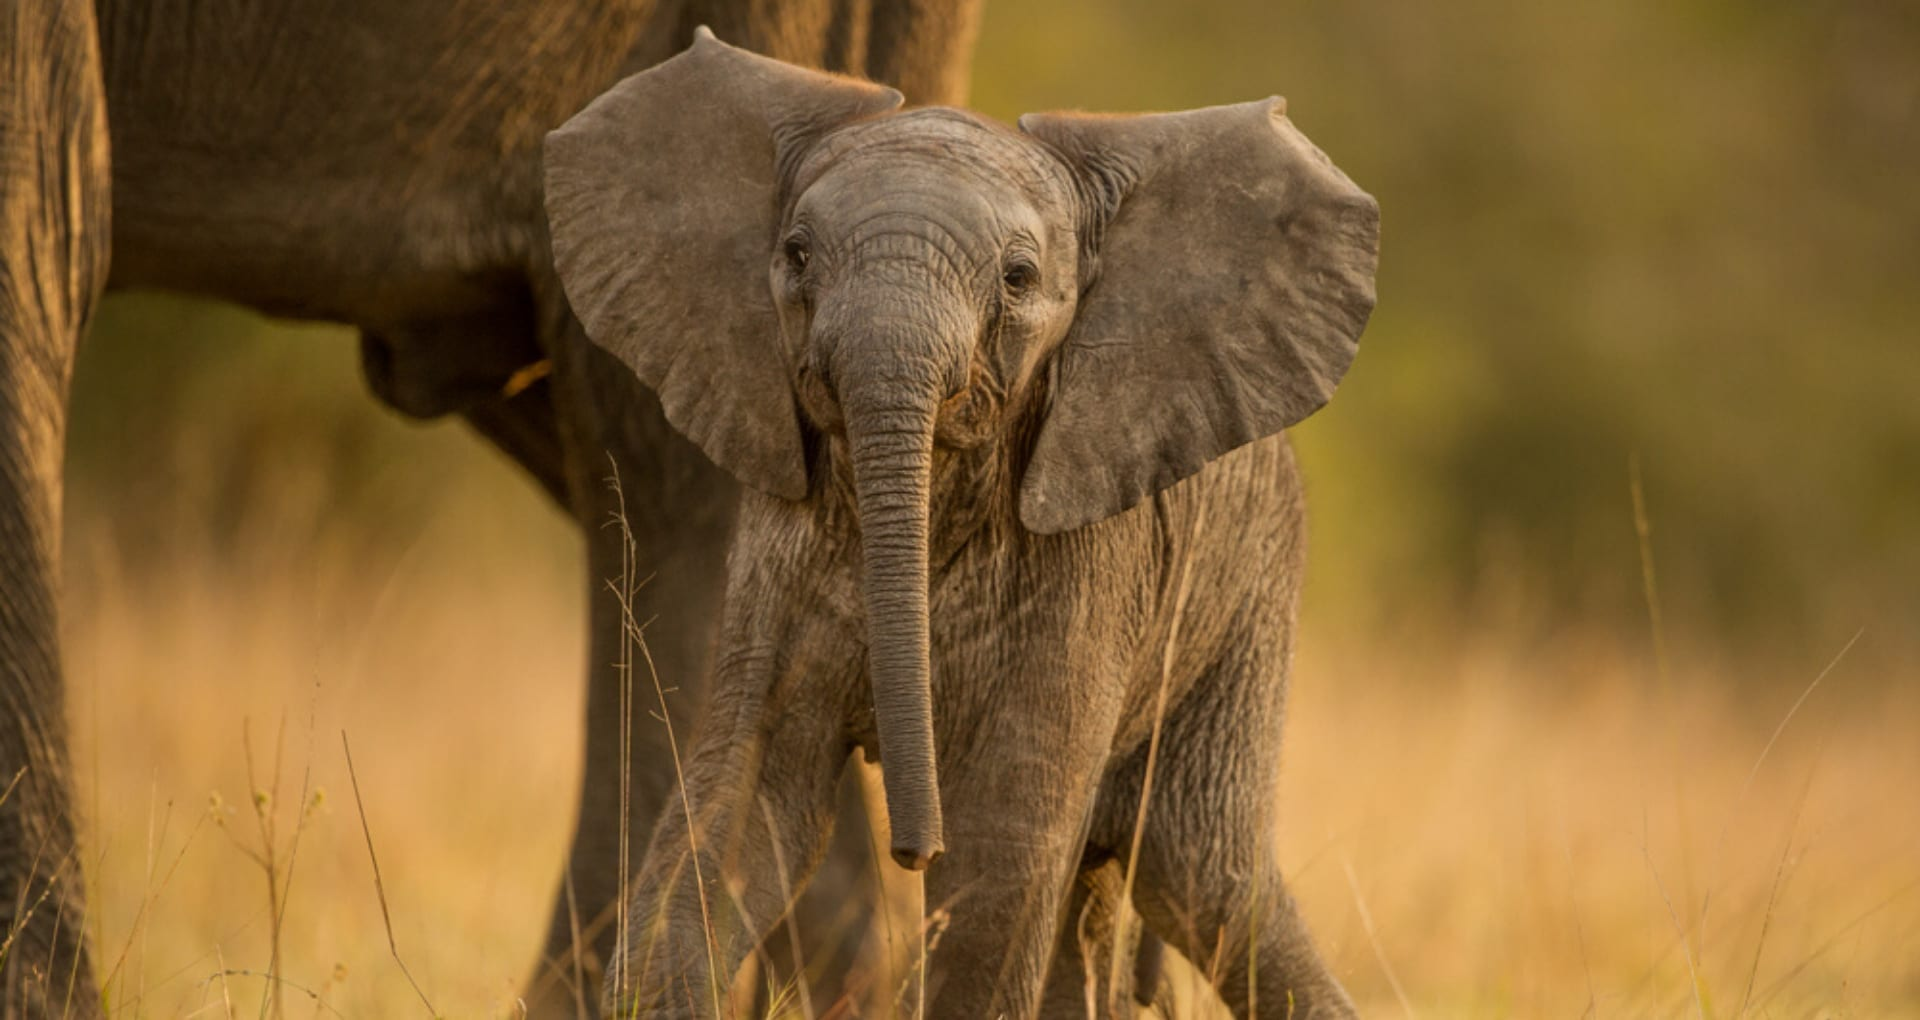 Elephant calf stood by its mother